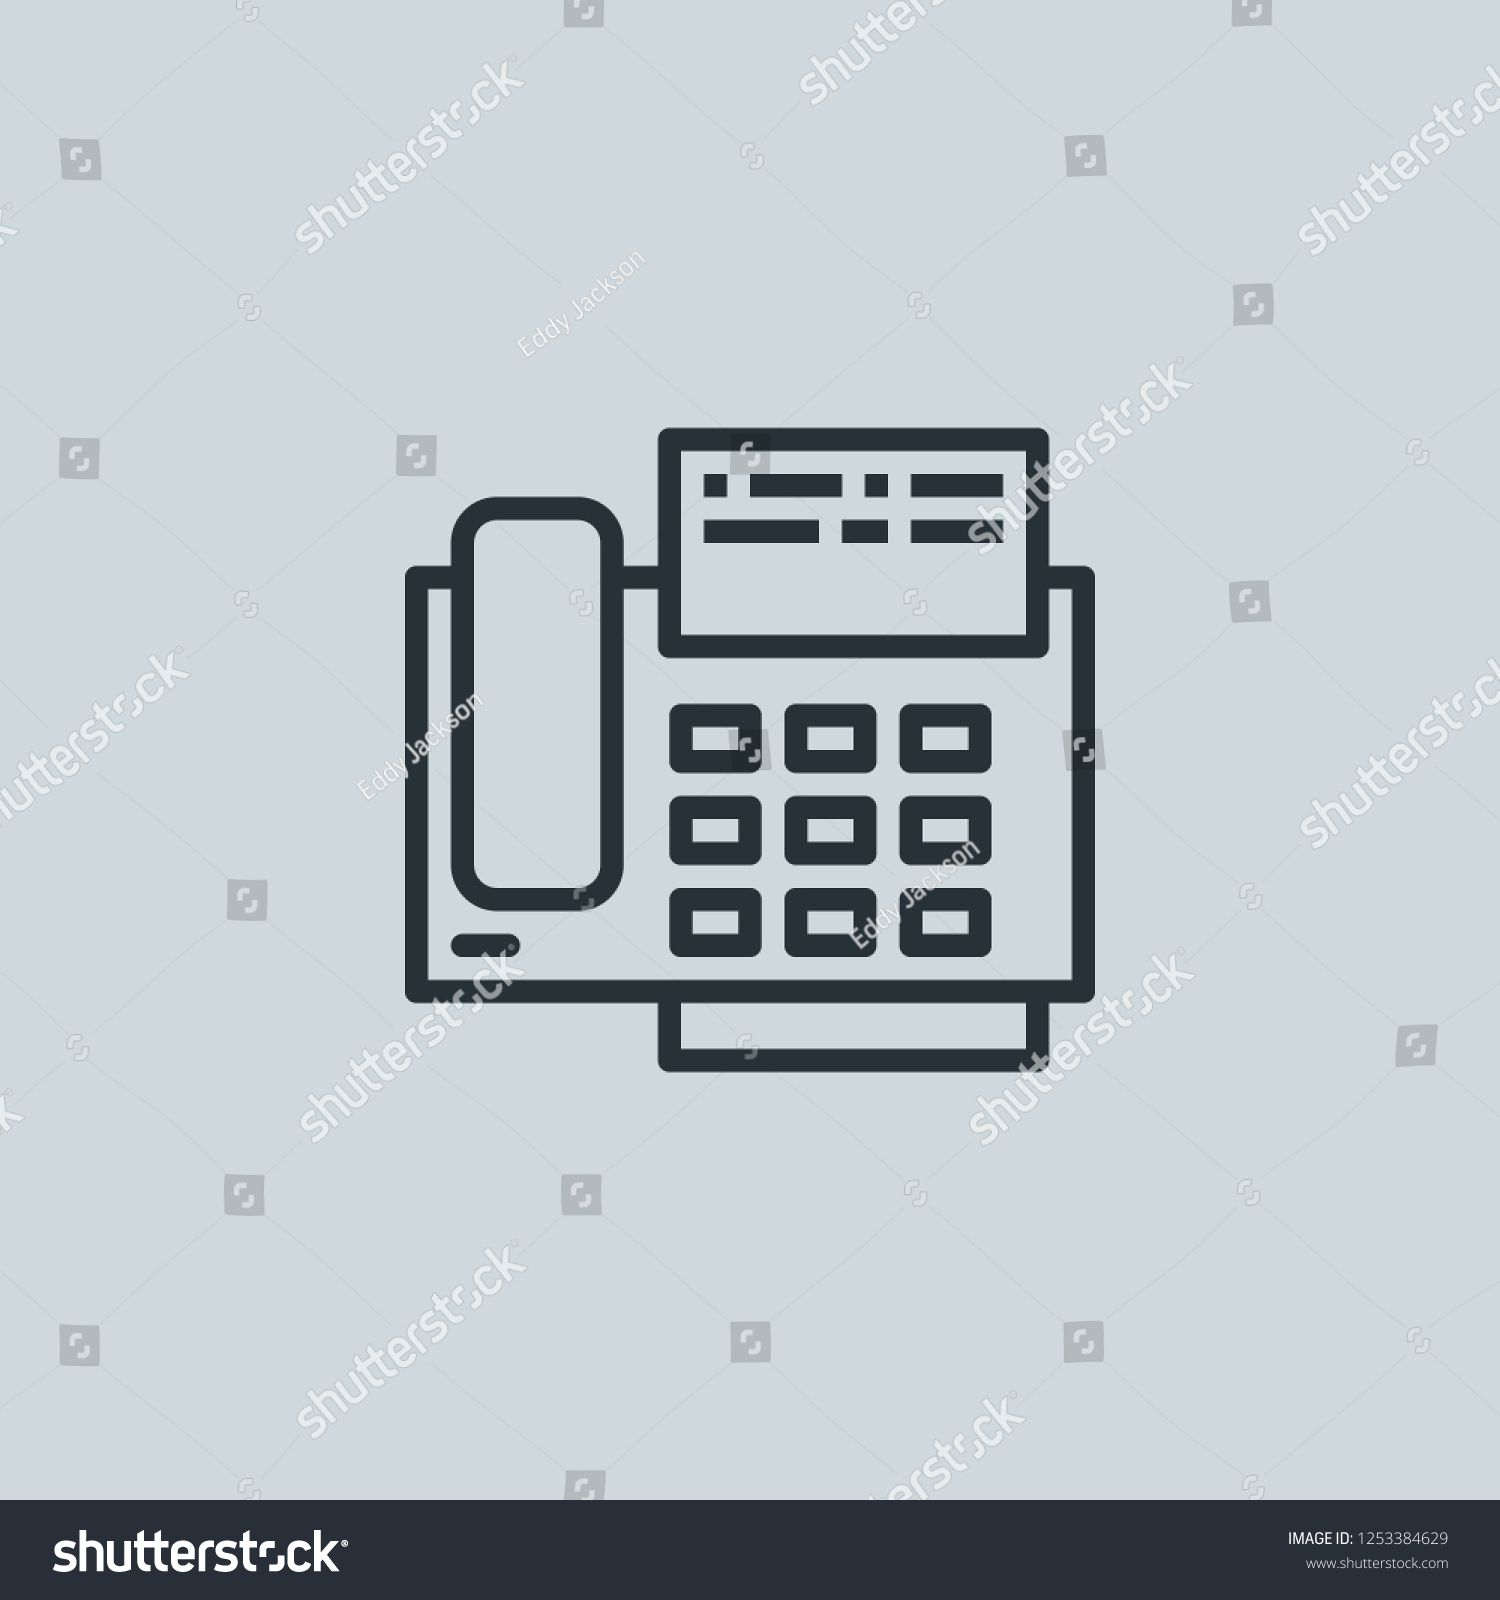 outline fax vector icon fax illustration for web mobile apps design fax vector symbol icon fax vector outli create yourself royalty free photos mobile app pinterest